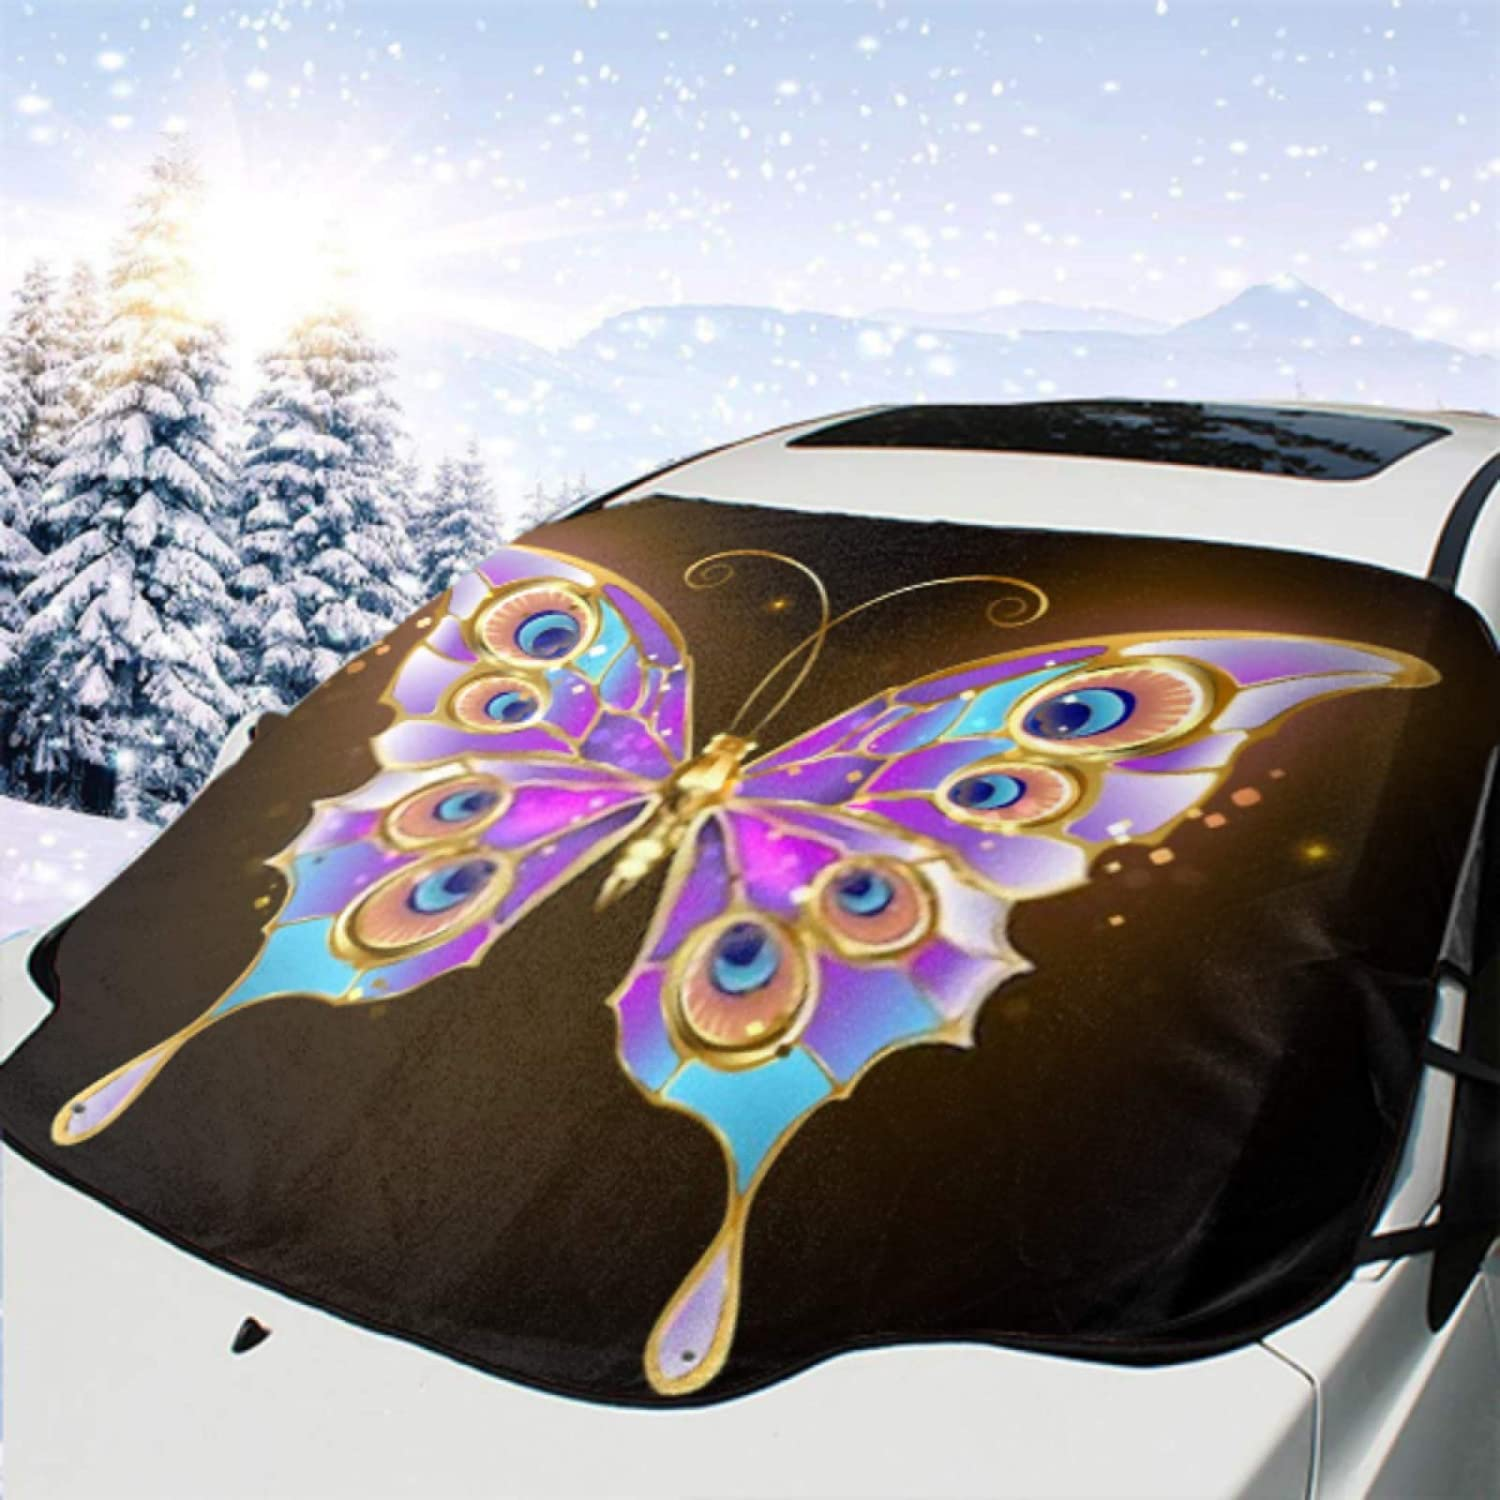 HWJL Car Windshield Cover Gold Wings Patterned Butterfly Peacoc Credence 2021 spring and summer new